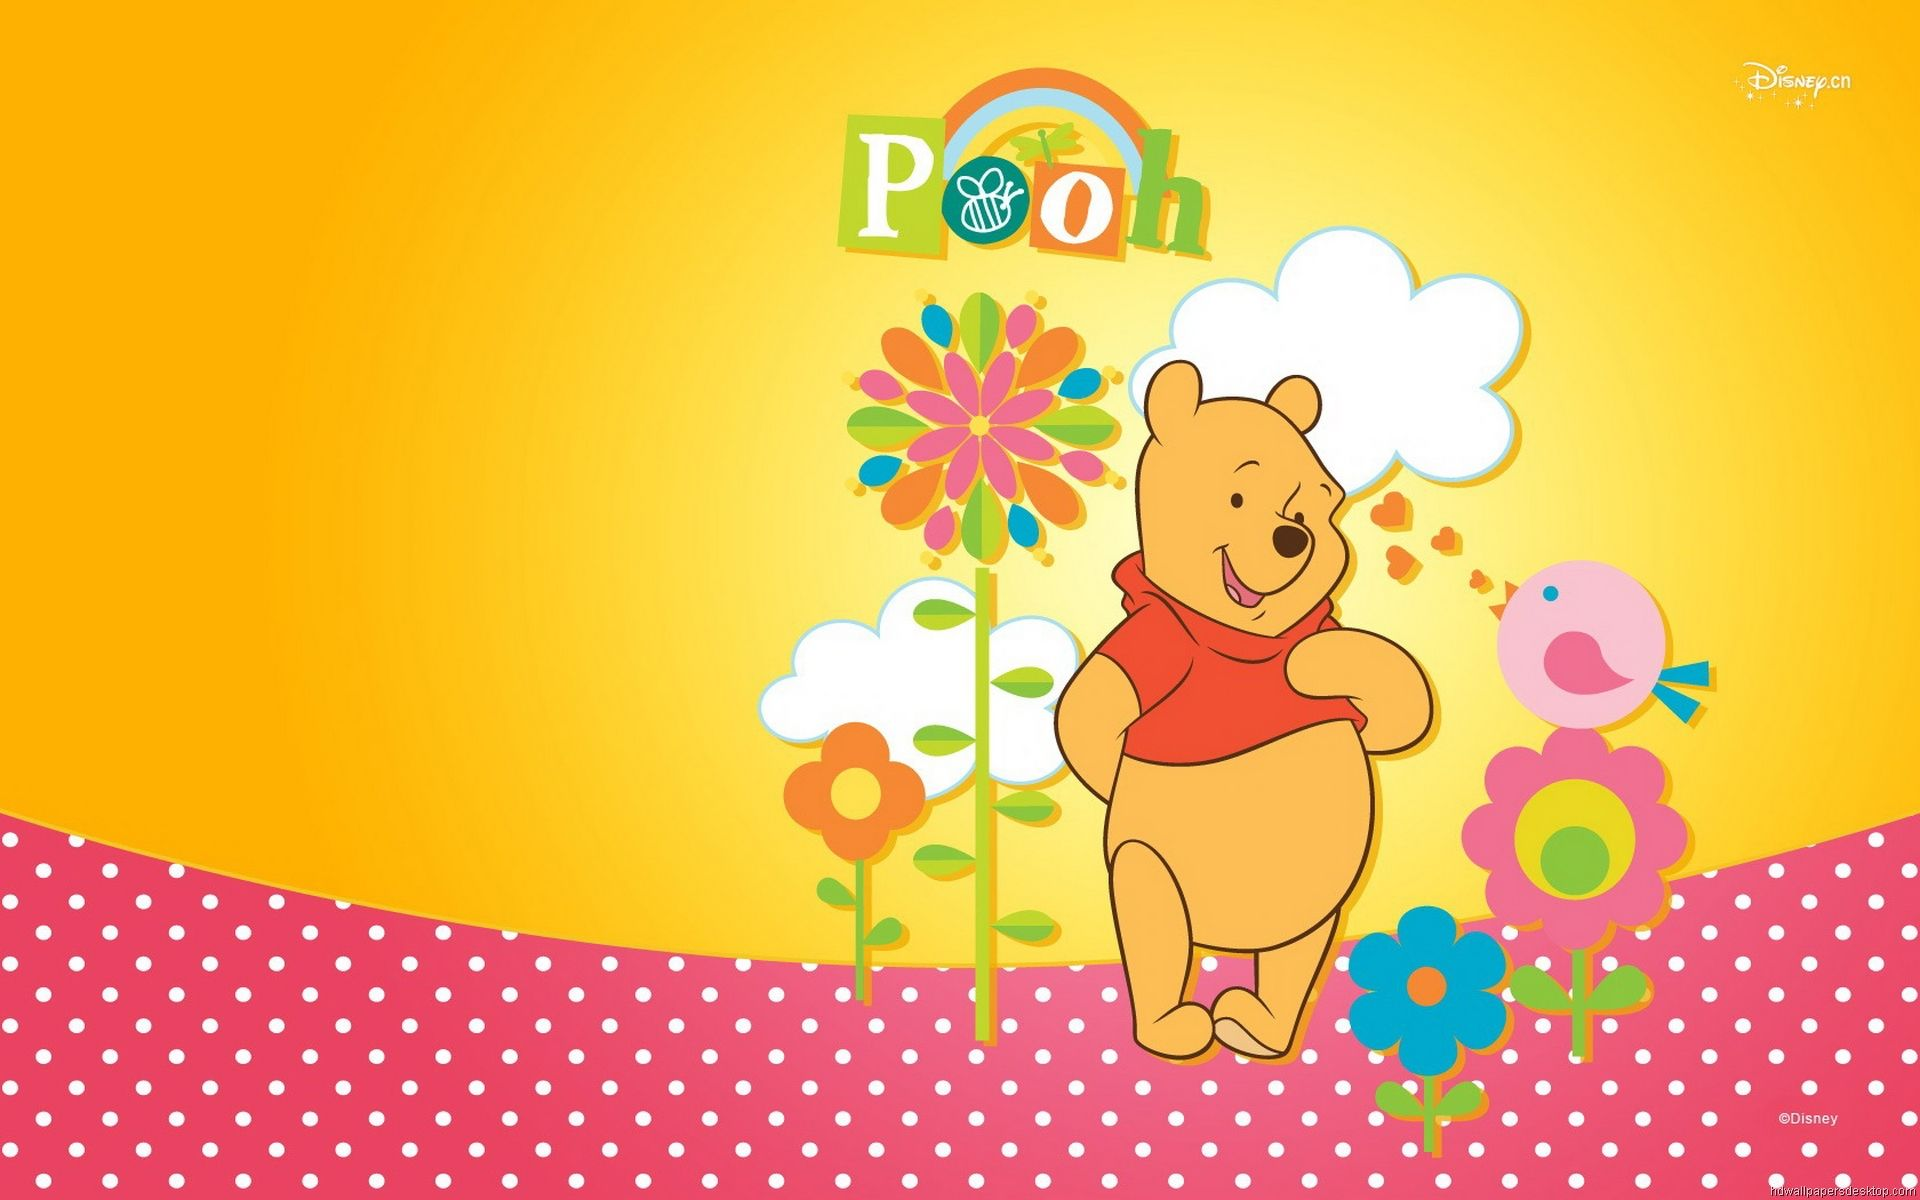 Winnie pooh wallpapers winnie pooh awesome photos collection 1024 winnie pooh wallpapers winnie pooh awesome photos collection 1024768 imagenes de winnie pooh wallpapers 36 wallpapers adorable wallpapers voltagebd Images